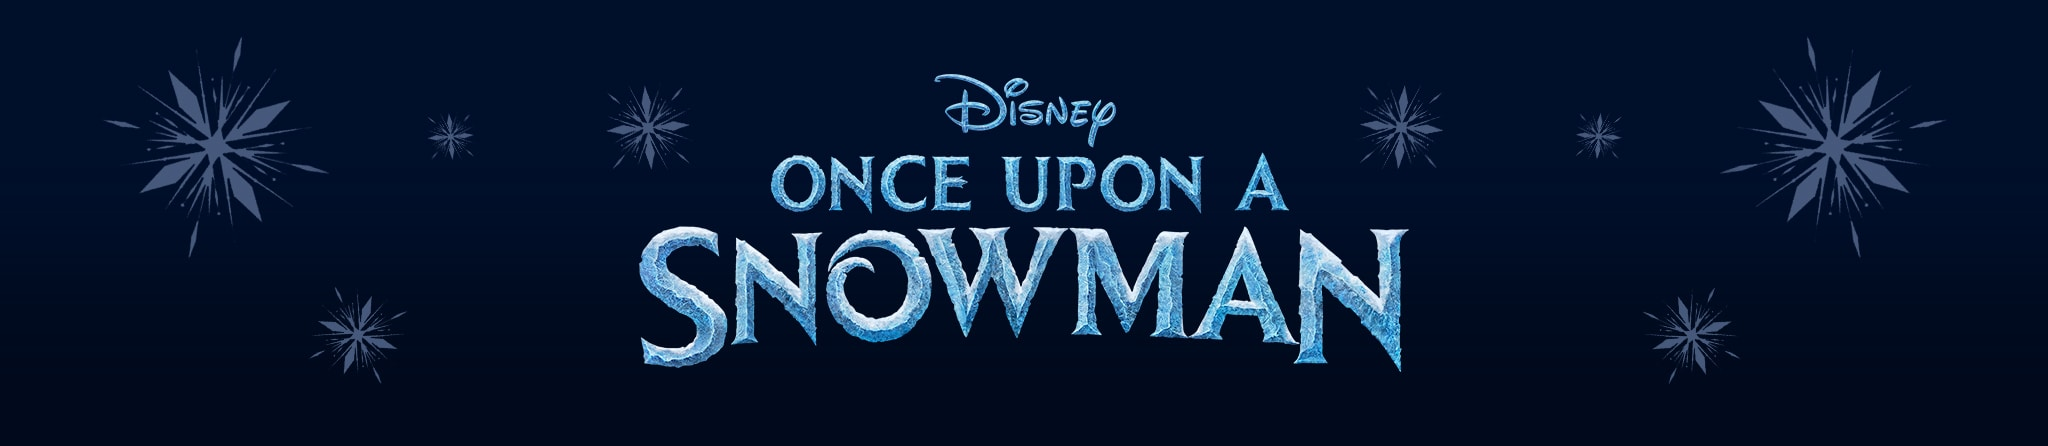 Disney | Once Upon a Snowman